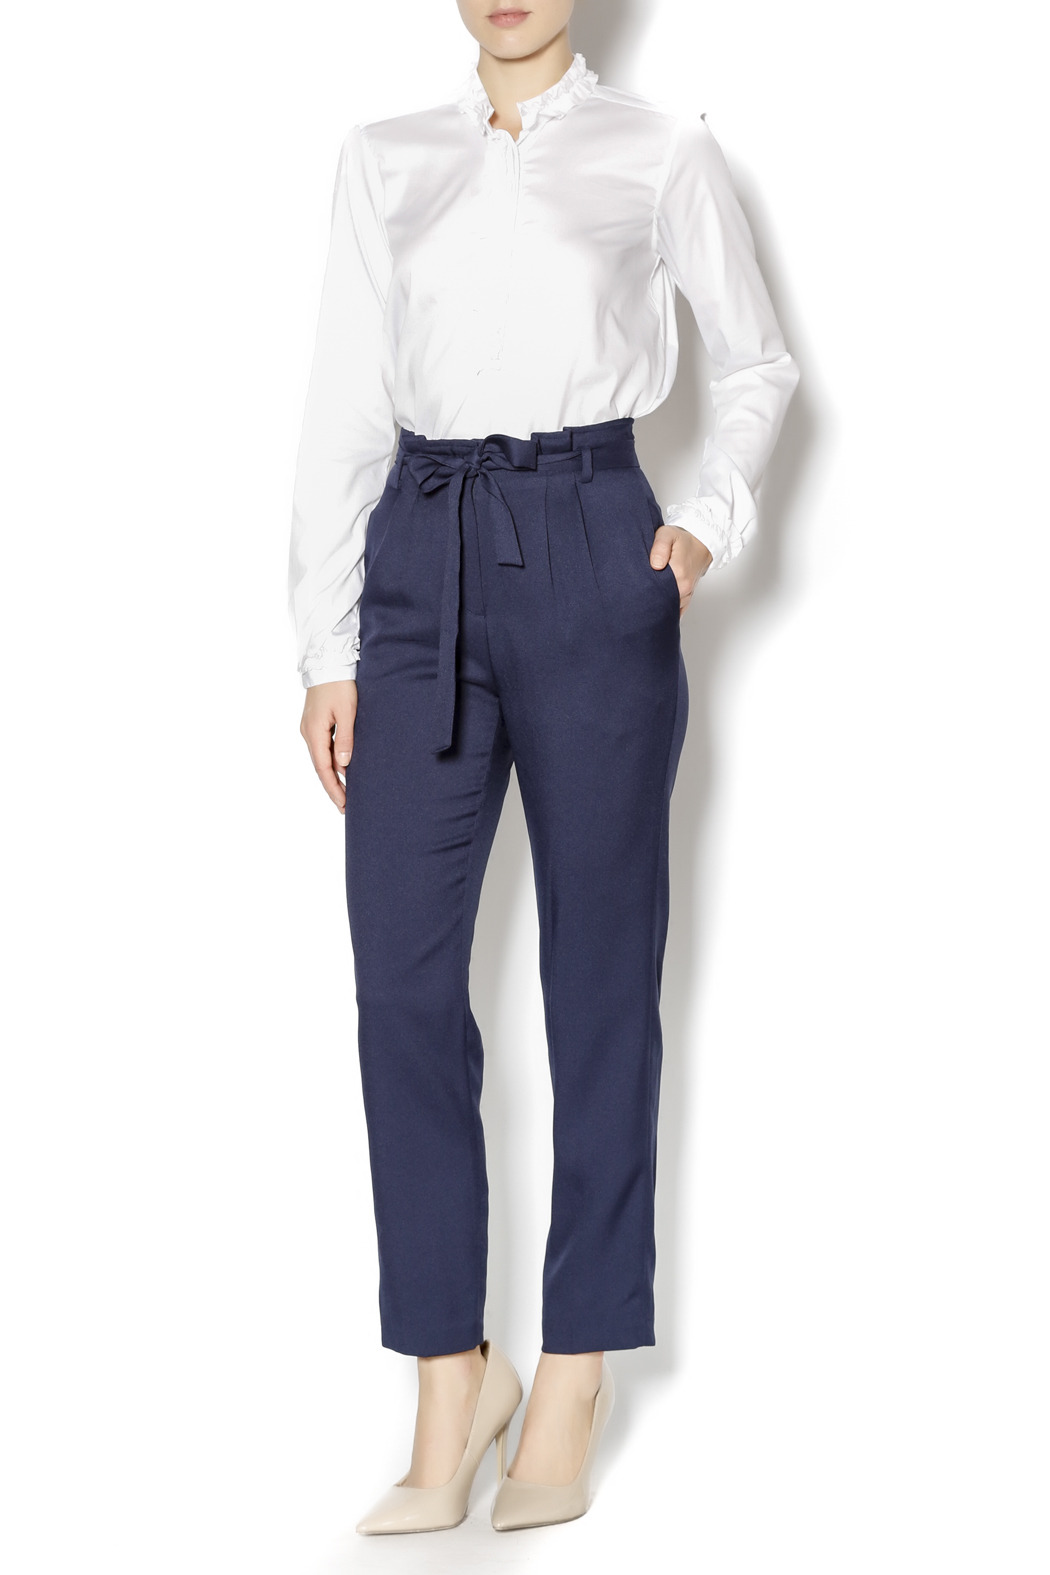 Pinkyotto Navy High Waisted Tie Pants - Front Full Image